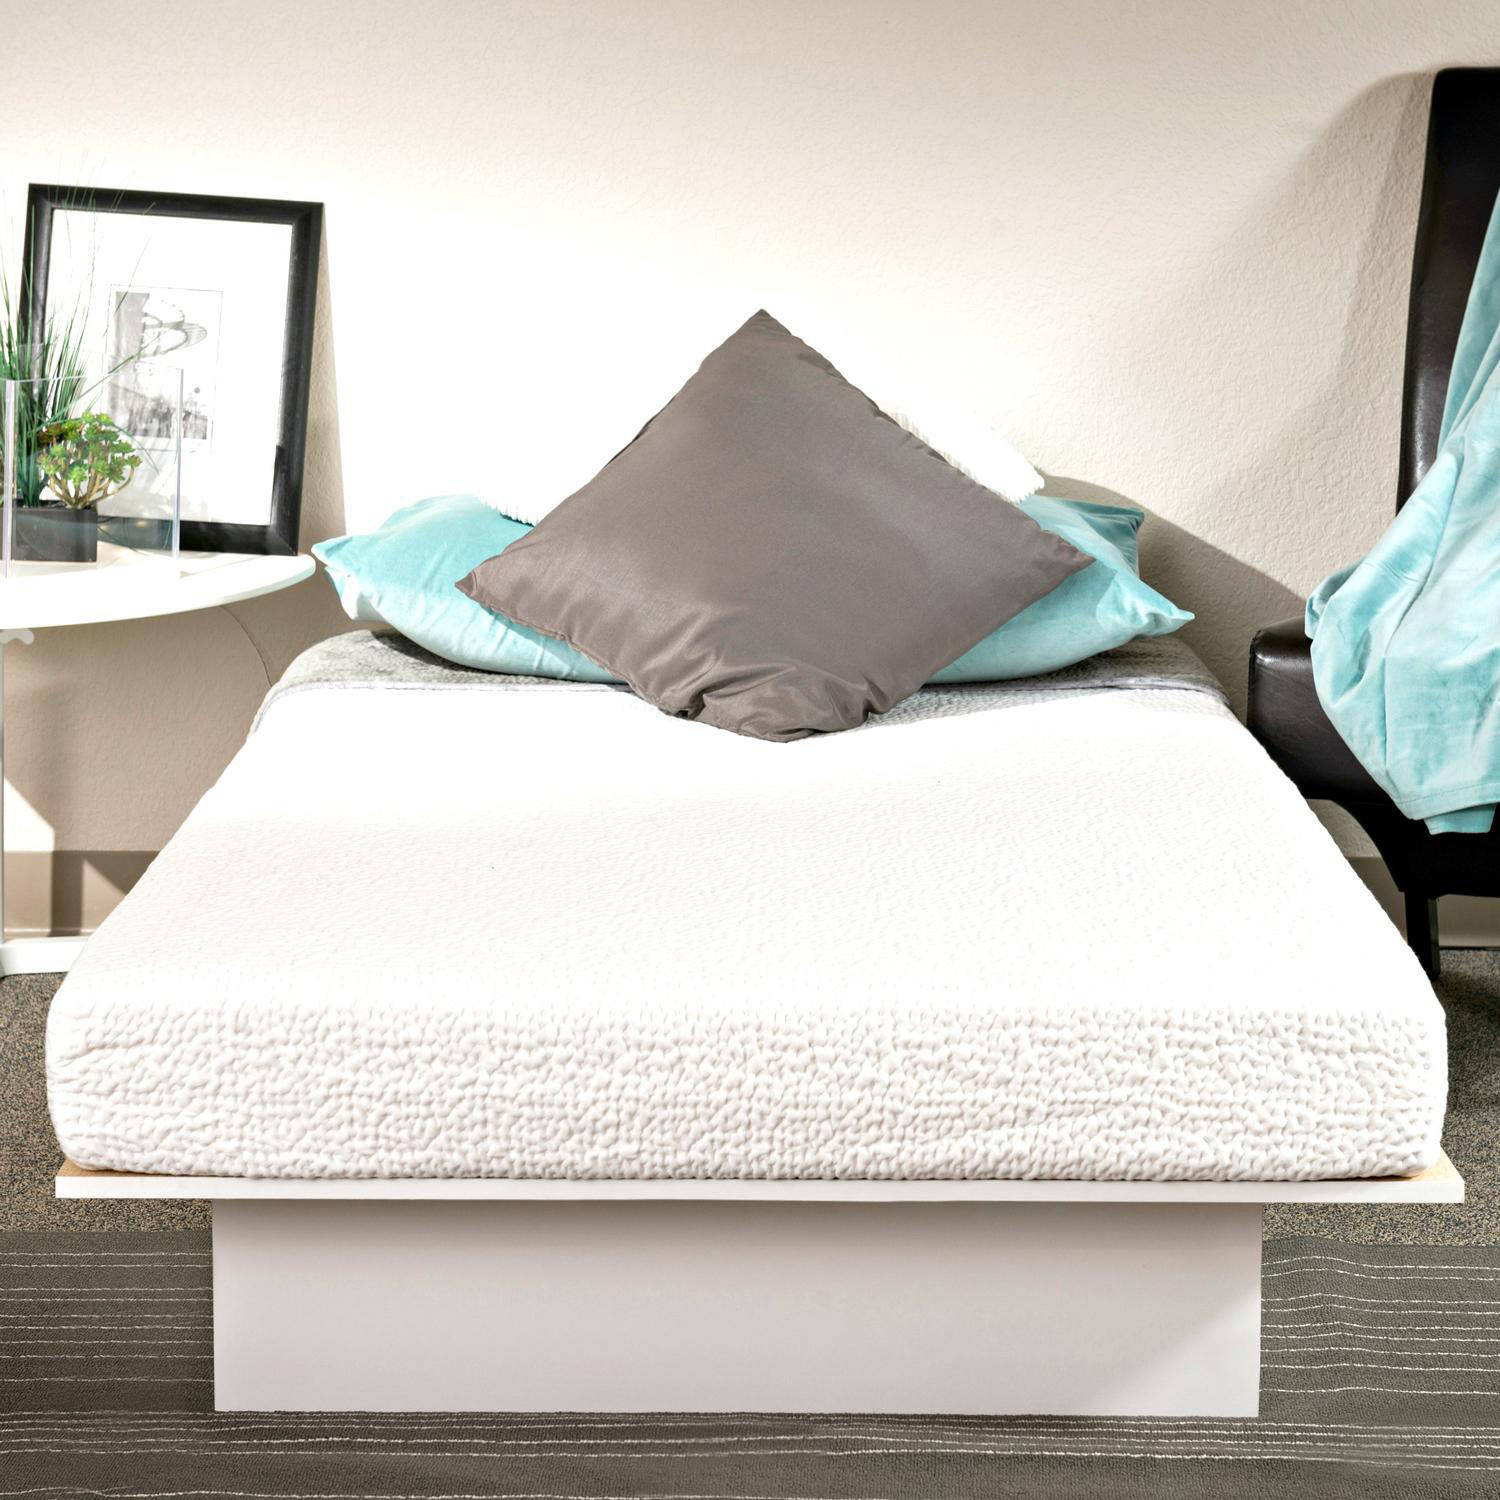 Details About Homedics 6 Memory Foam Mattress Multiple Sizes